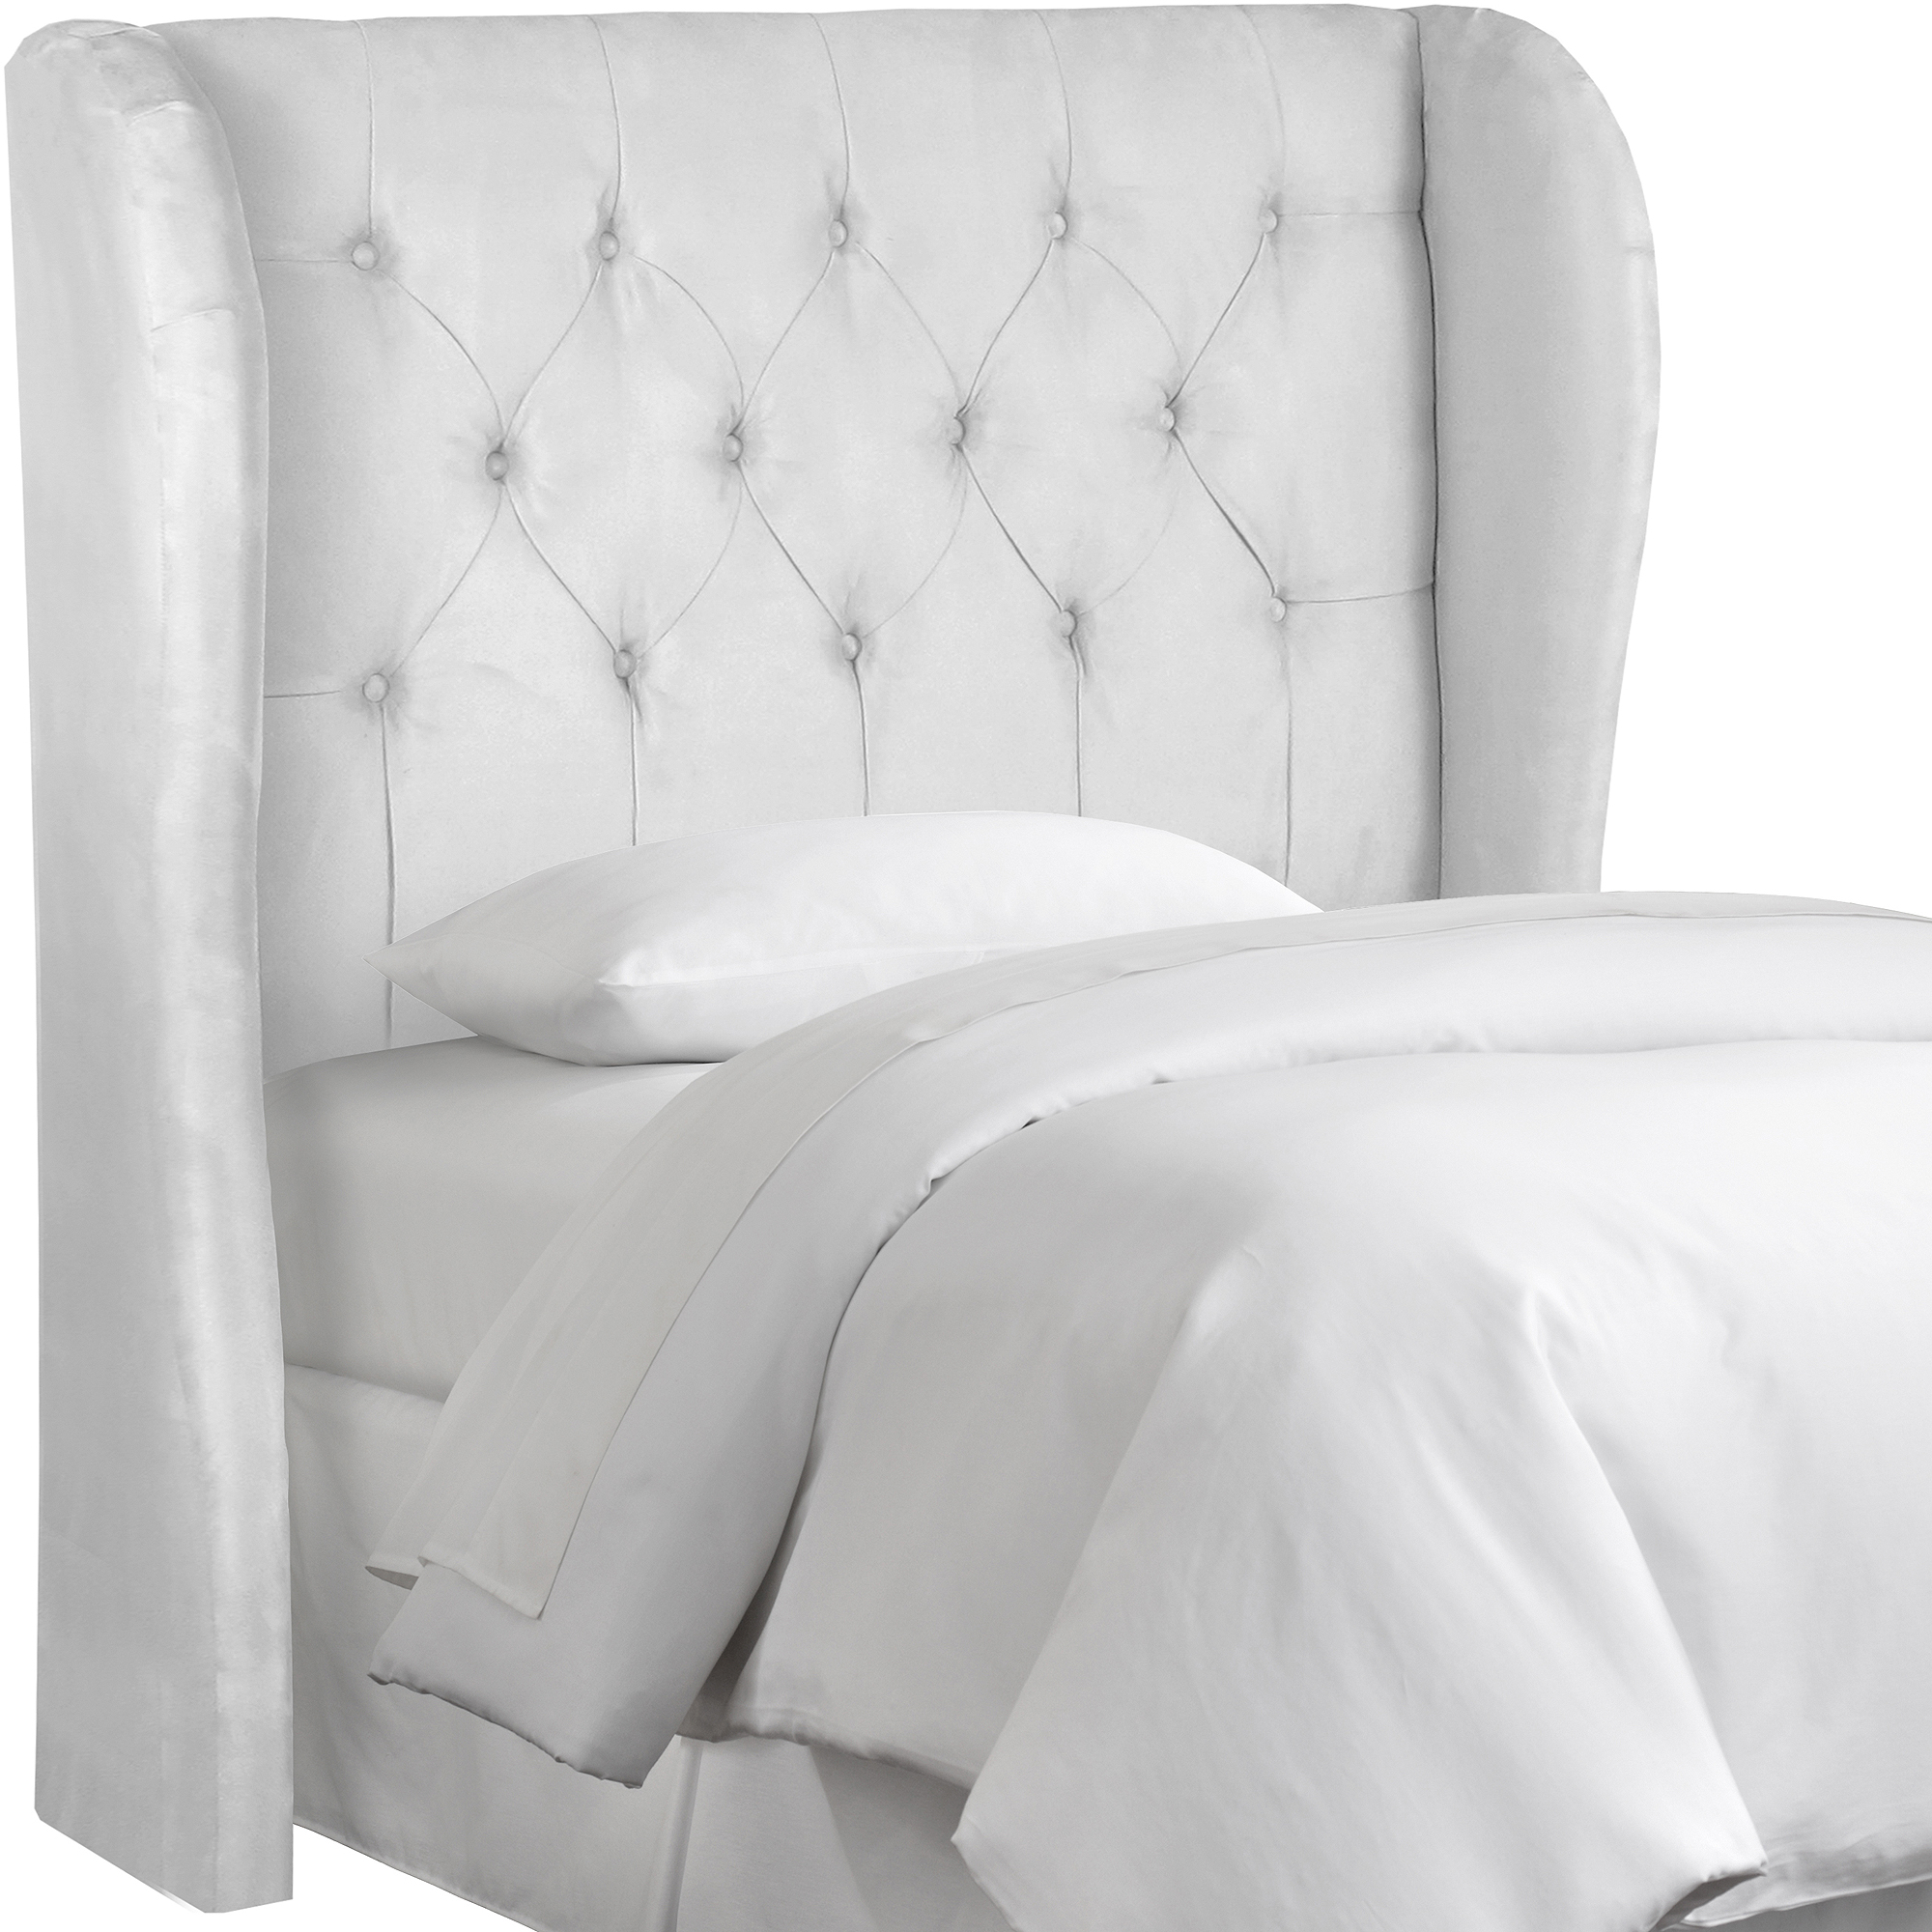 skyline furniture premier white tufted wingback headboard  - skyline furniture premier white tufted wingback headboard  walmartcom